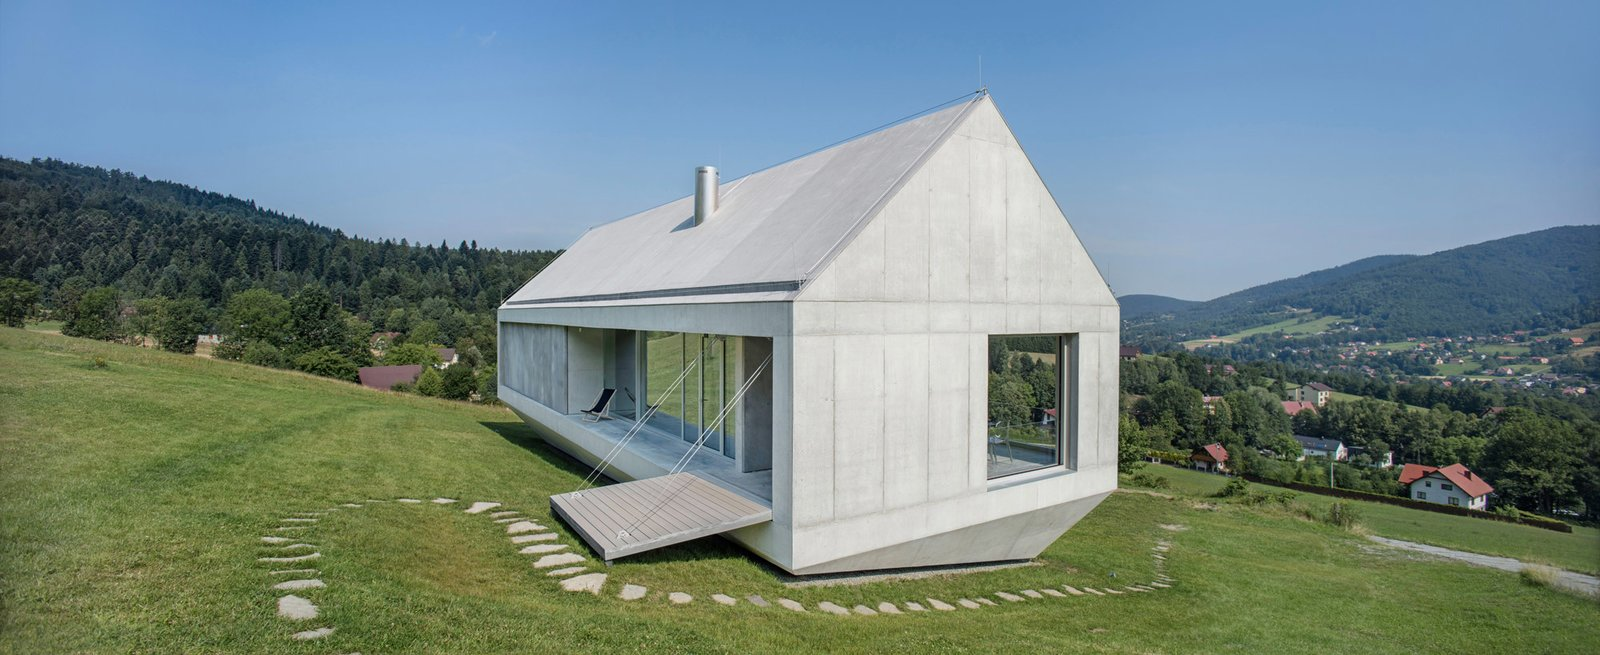 Photo 5 of 8 in A Striking Modern House Built In A Pastoral Landscape